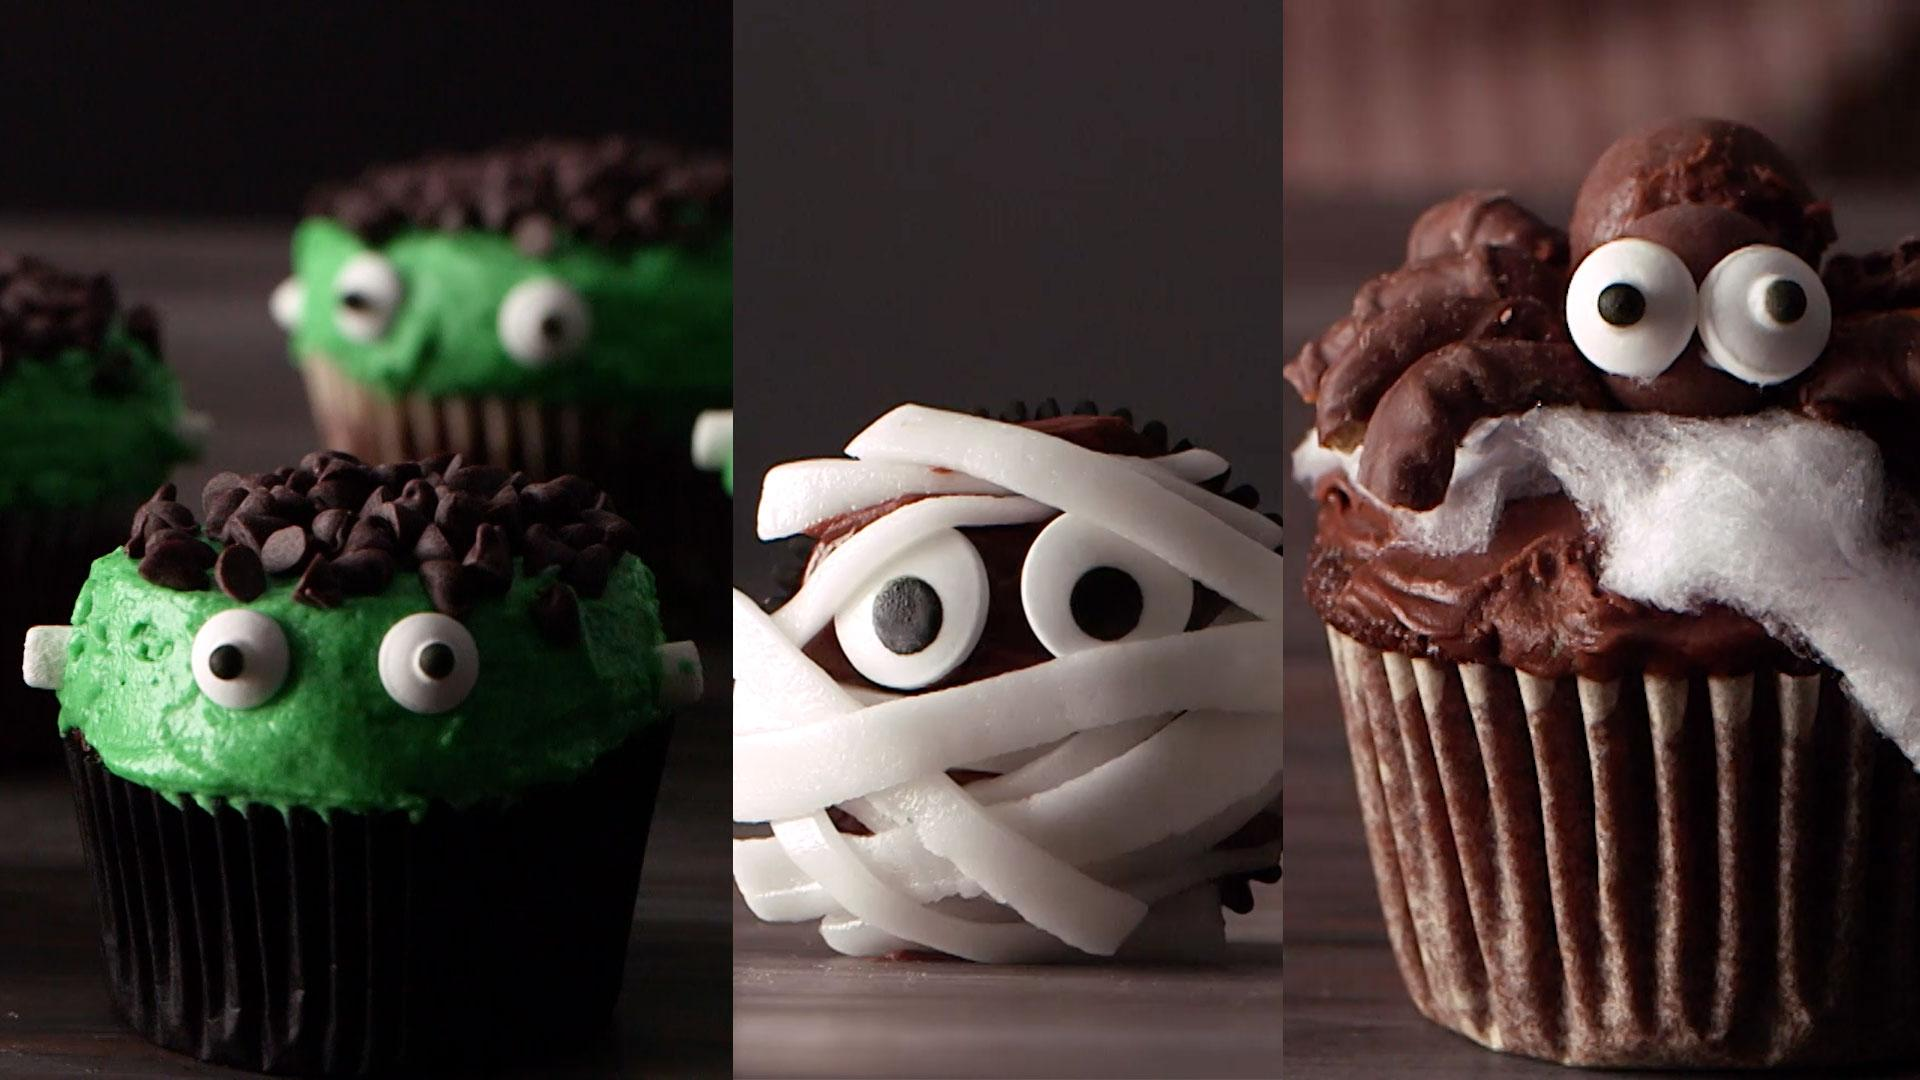 3 Halloween Cupcakes Your Party Needs